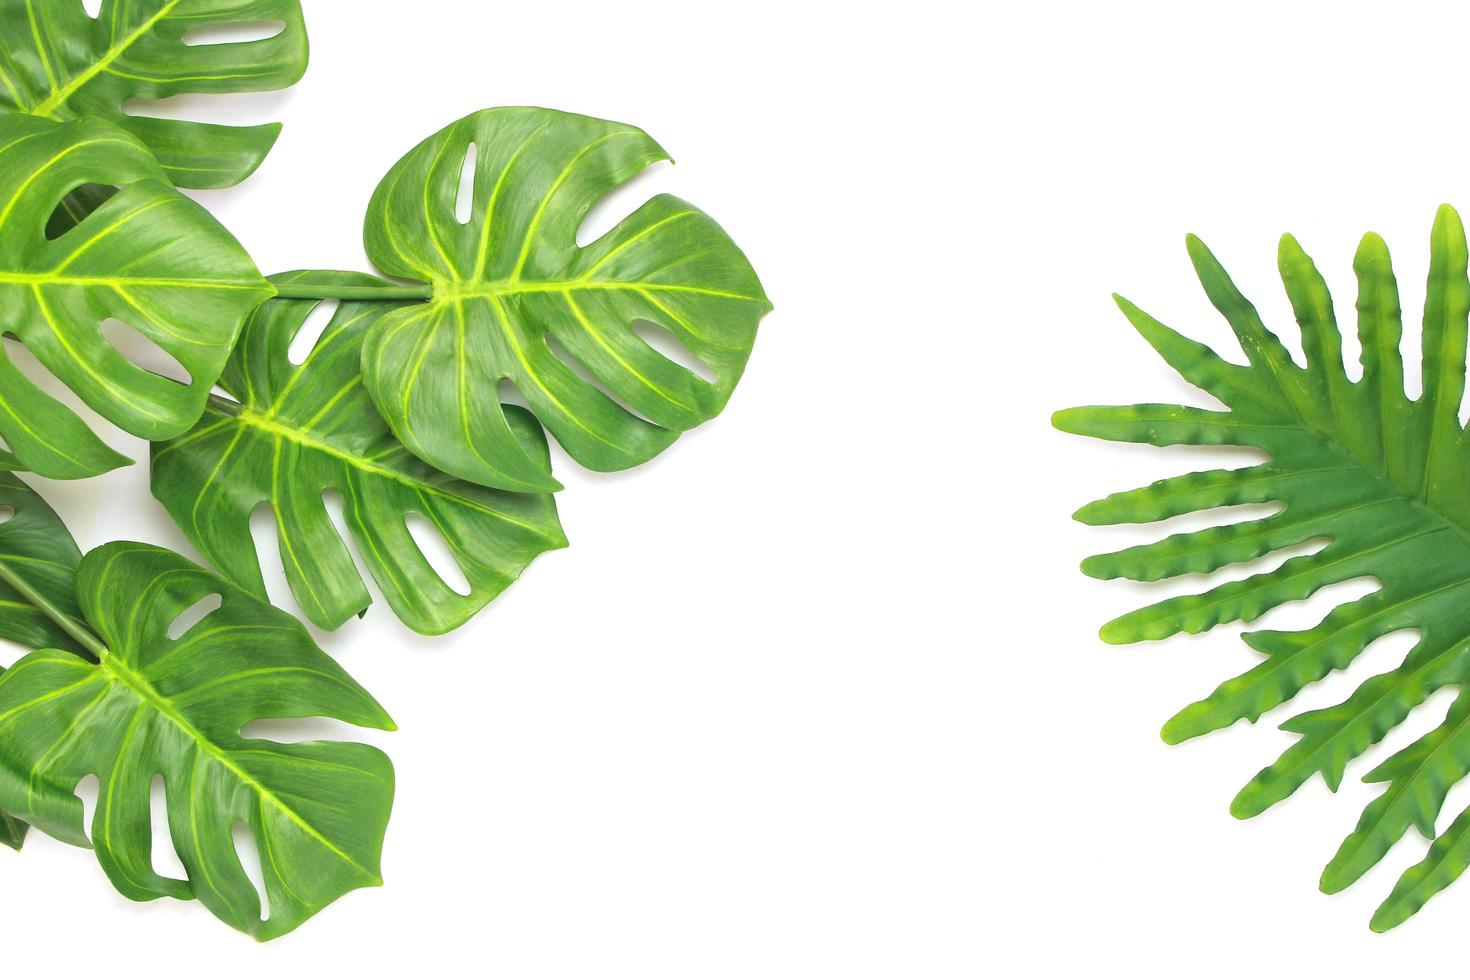 Tropical philodendron and monstera palm leaves photo